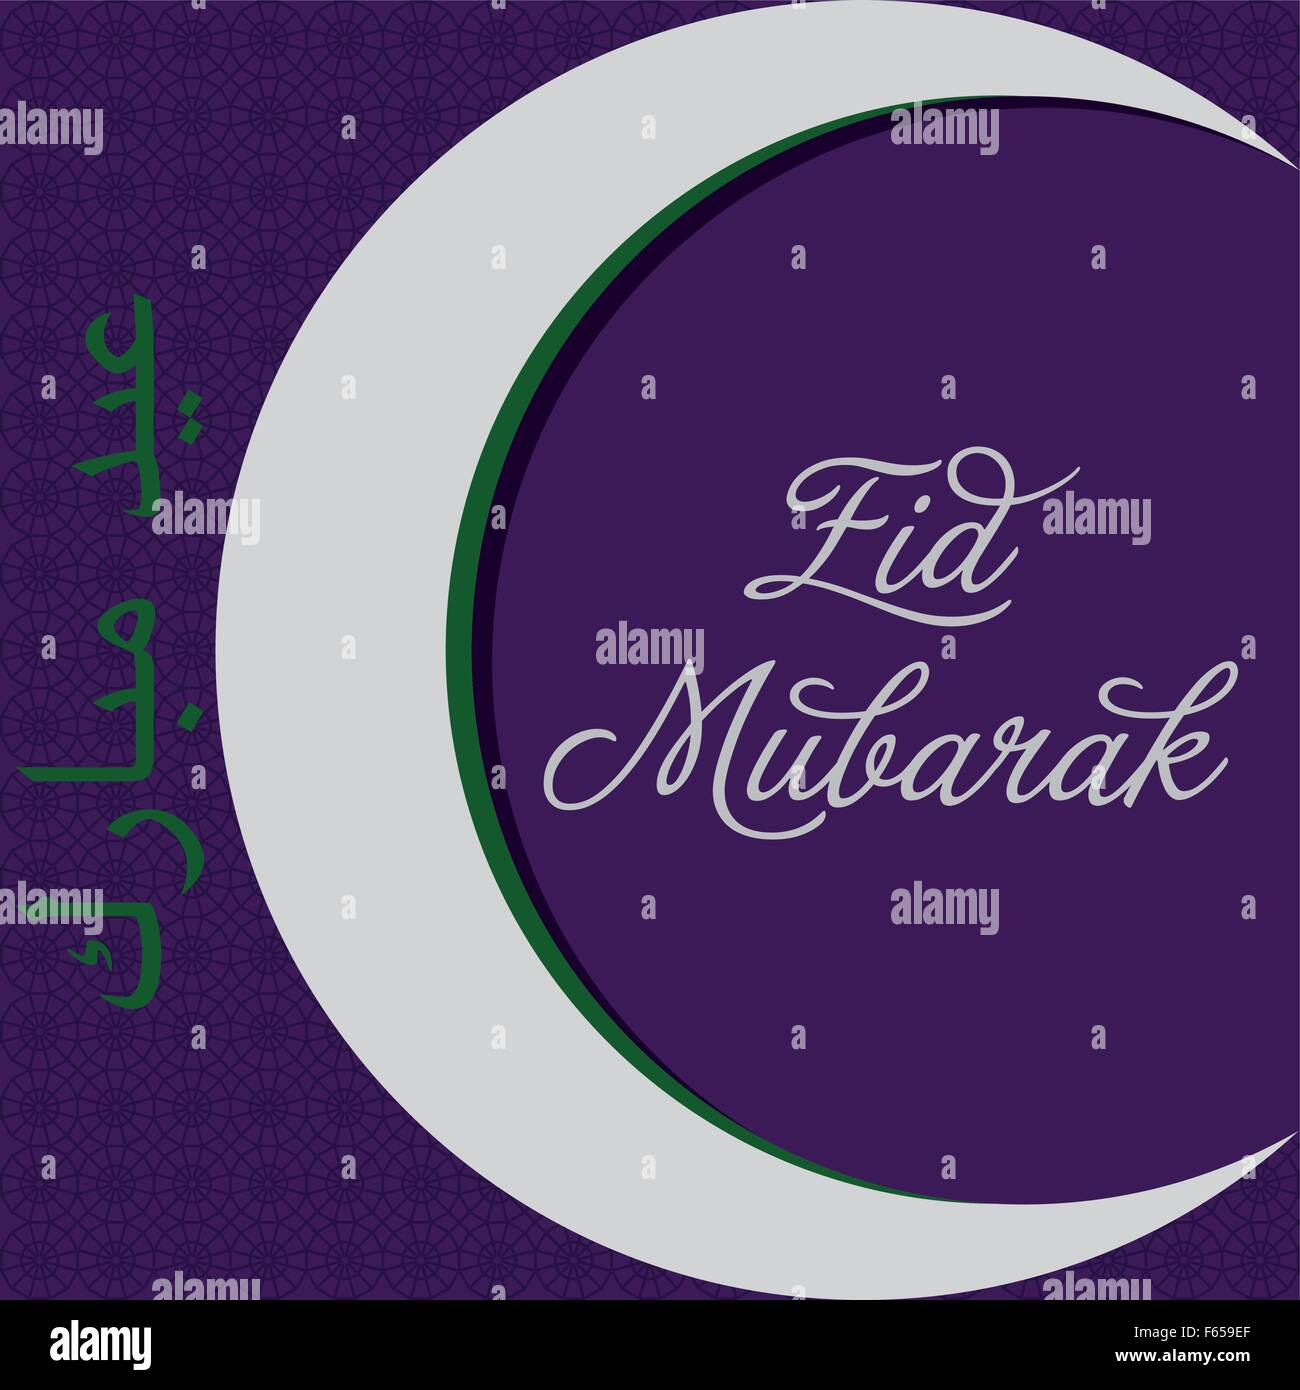 Eid mubarak blessed eid cut out greeting card in vector format eid mubarak blessed eid cut out greeting card in vector format kristyandbryce Image collections